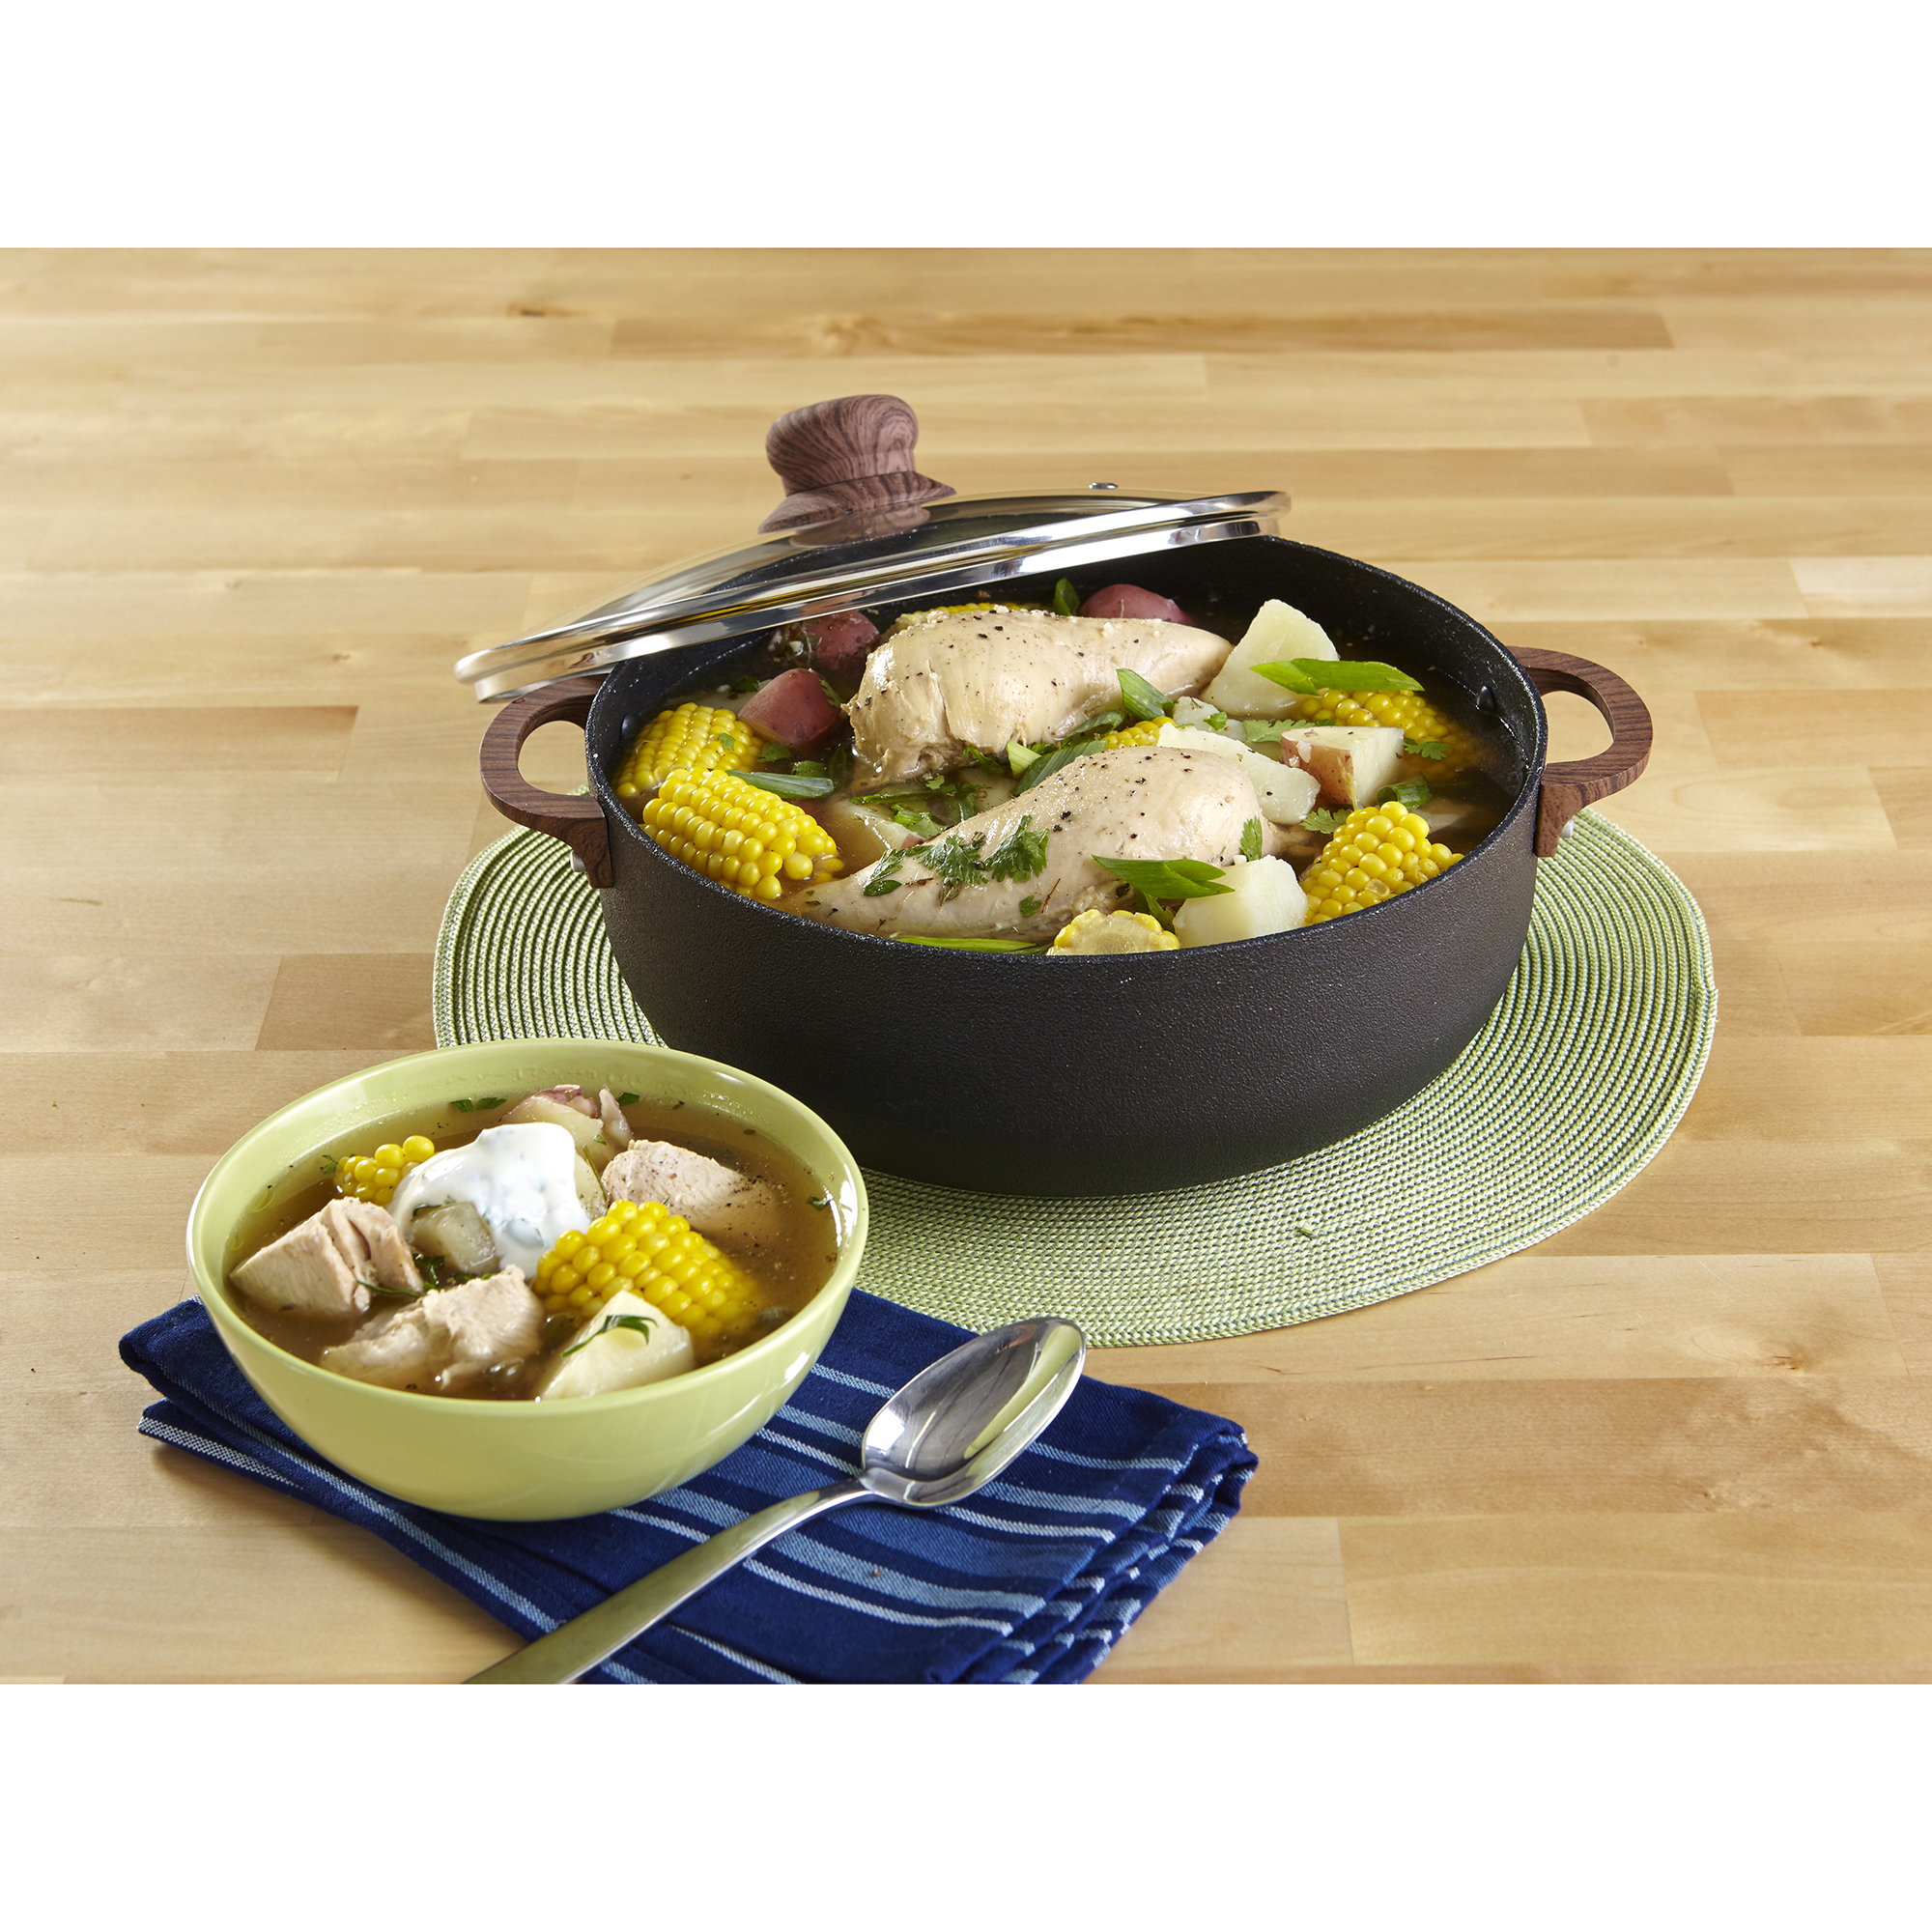 IMUSA Nonstick Spleckled Black Stone Caldero with Tempered Glass Lid and Woodlook Soft Touch Handles 4.4 Quart, Black